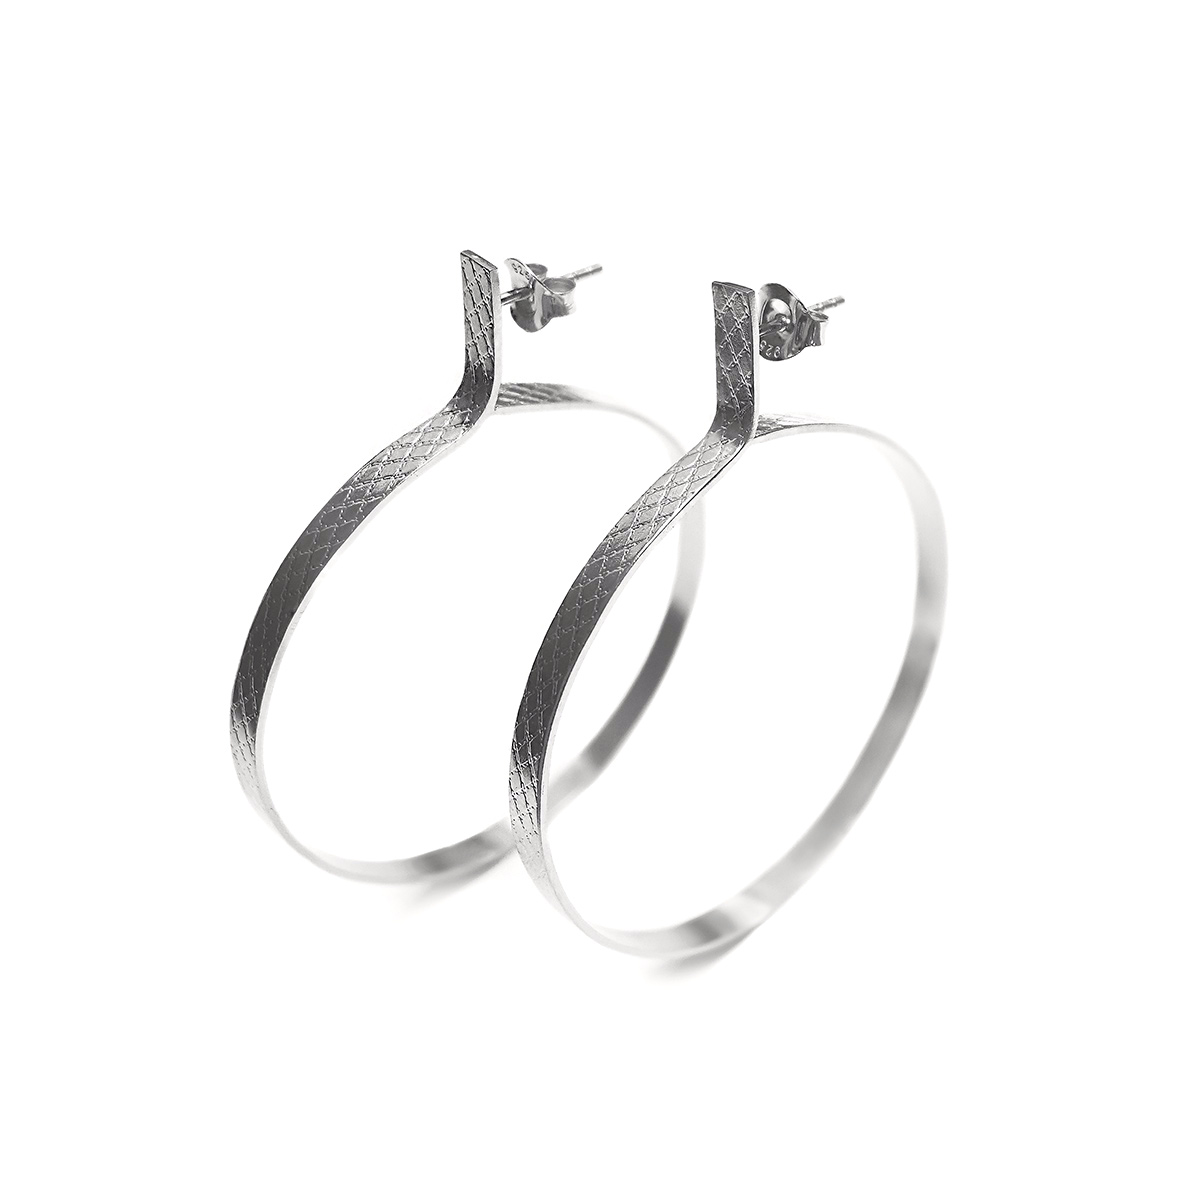 Wire-circle-earrings